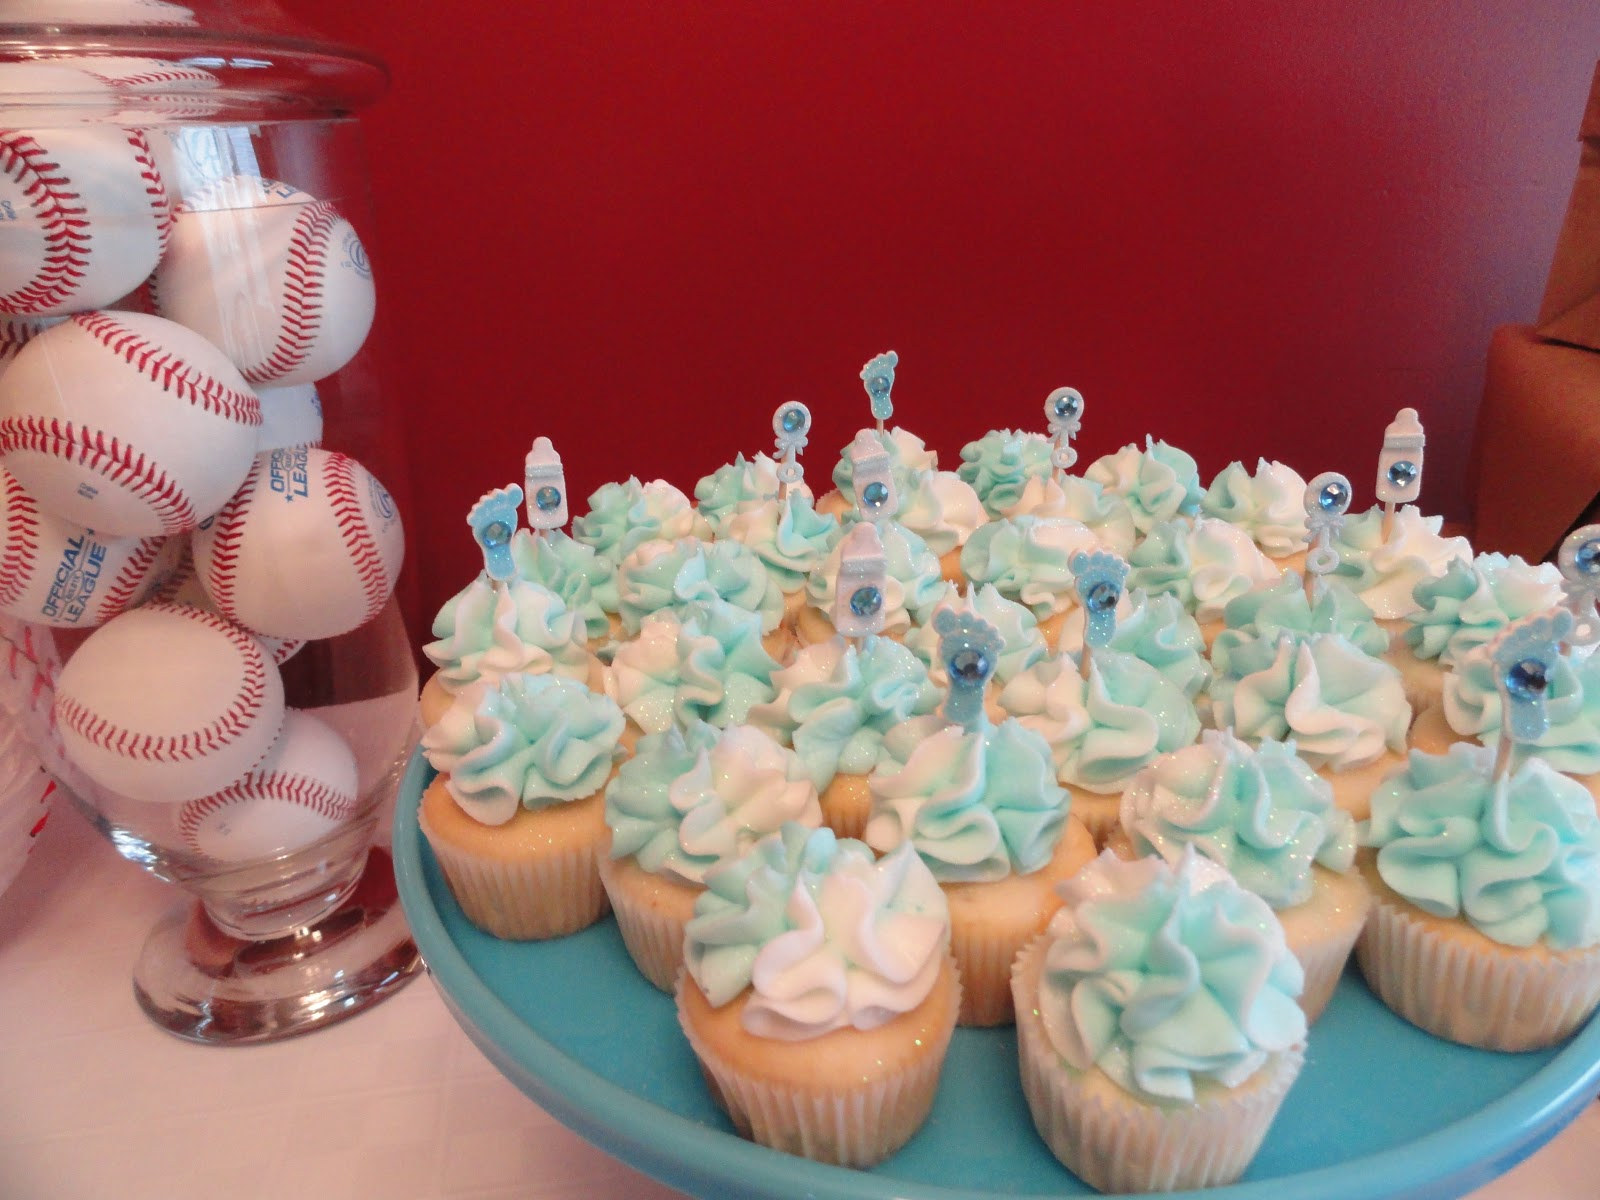 walmart bakery baby shower cakes came from a boutique bakery